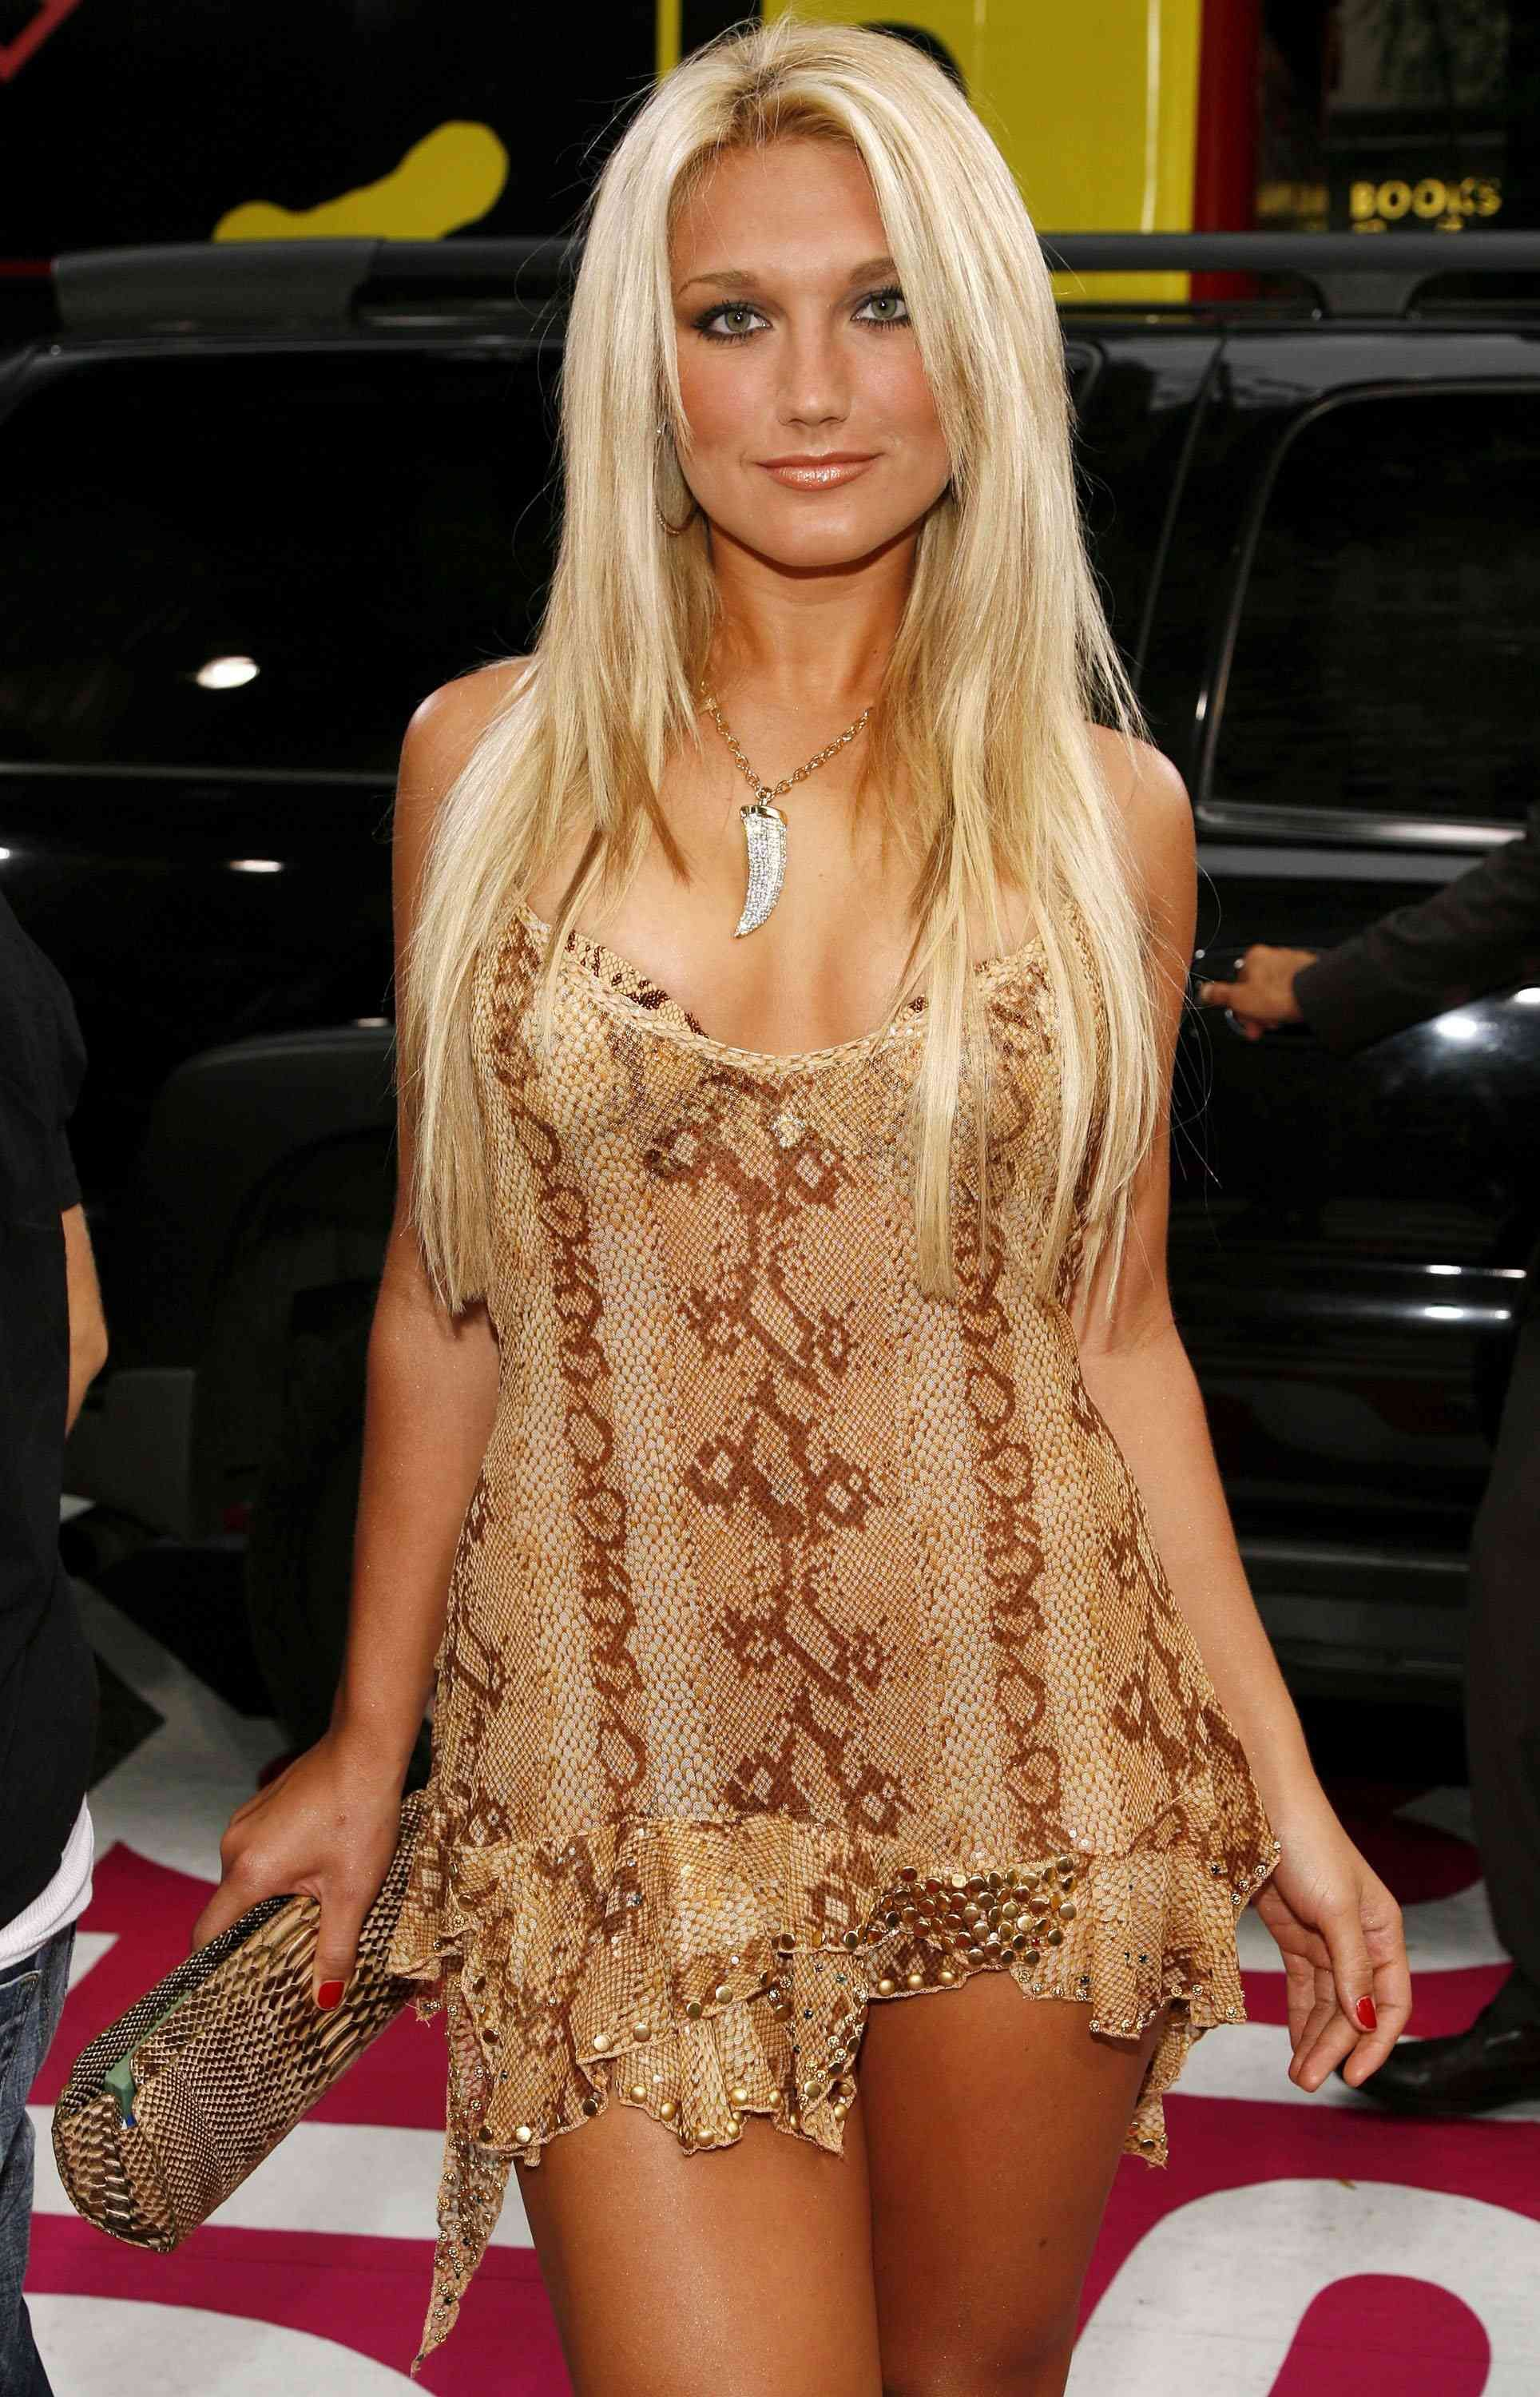 Brooke Hogan Brooke Hogan Pinterest Brooke Hogan Celebrity